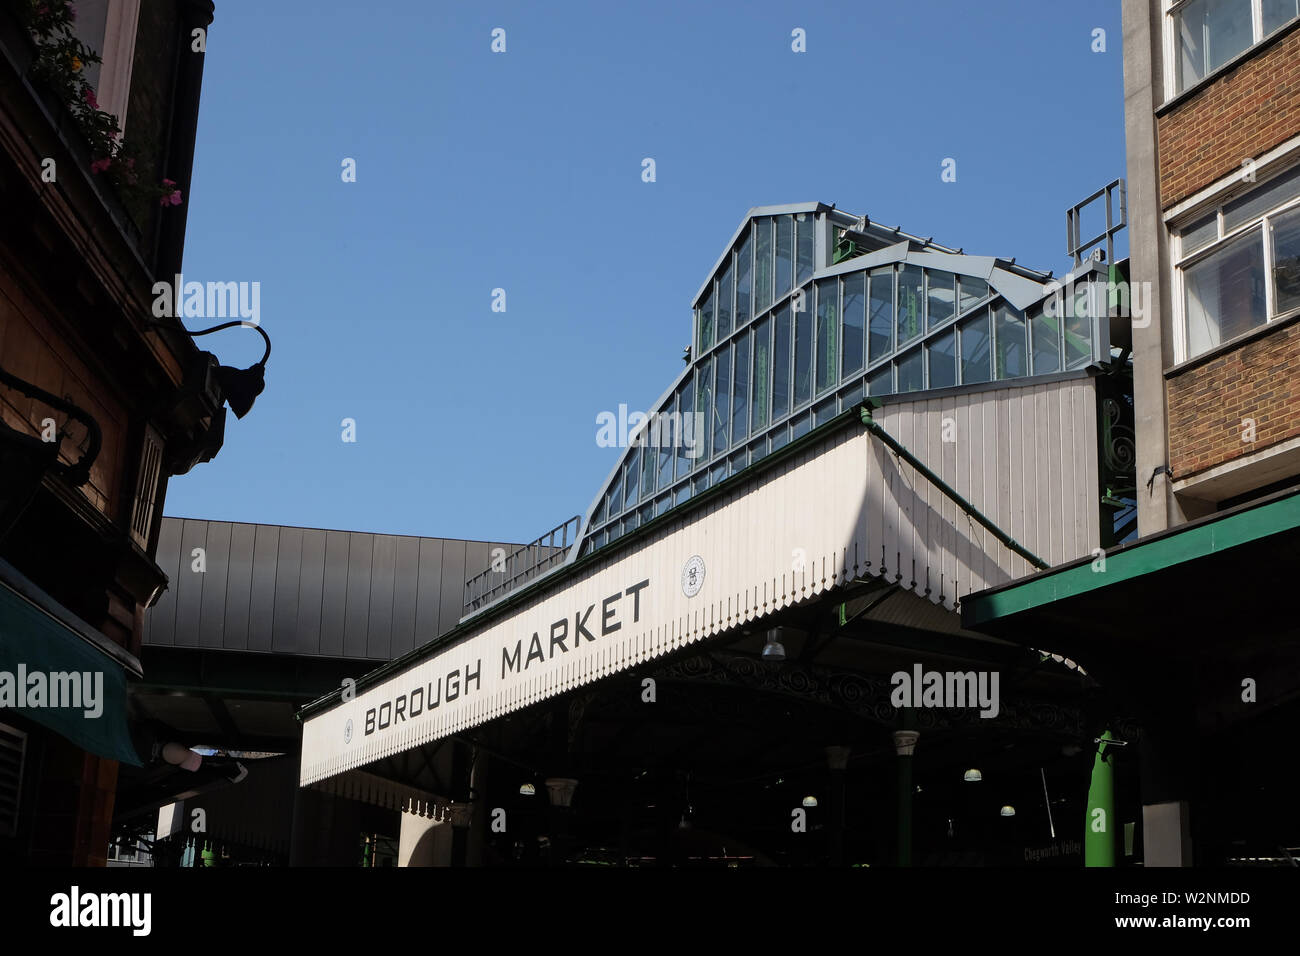 London, United Kingdom: July 1st 2019 - Borough Market in the London Bridge area is one of London's oldest markets and has become a trendy foodie dest - Stock Image